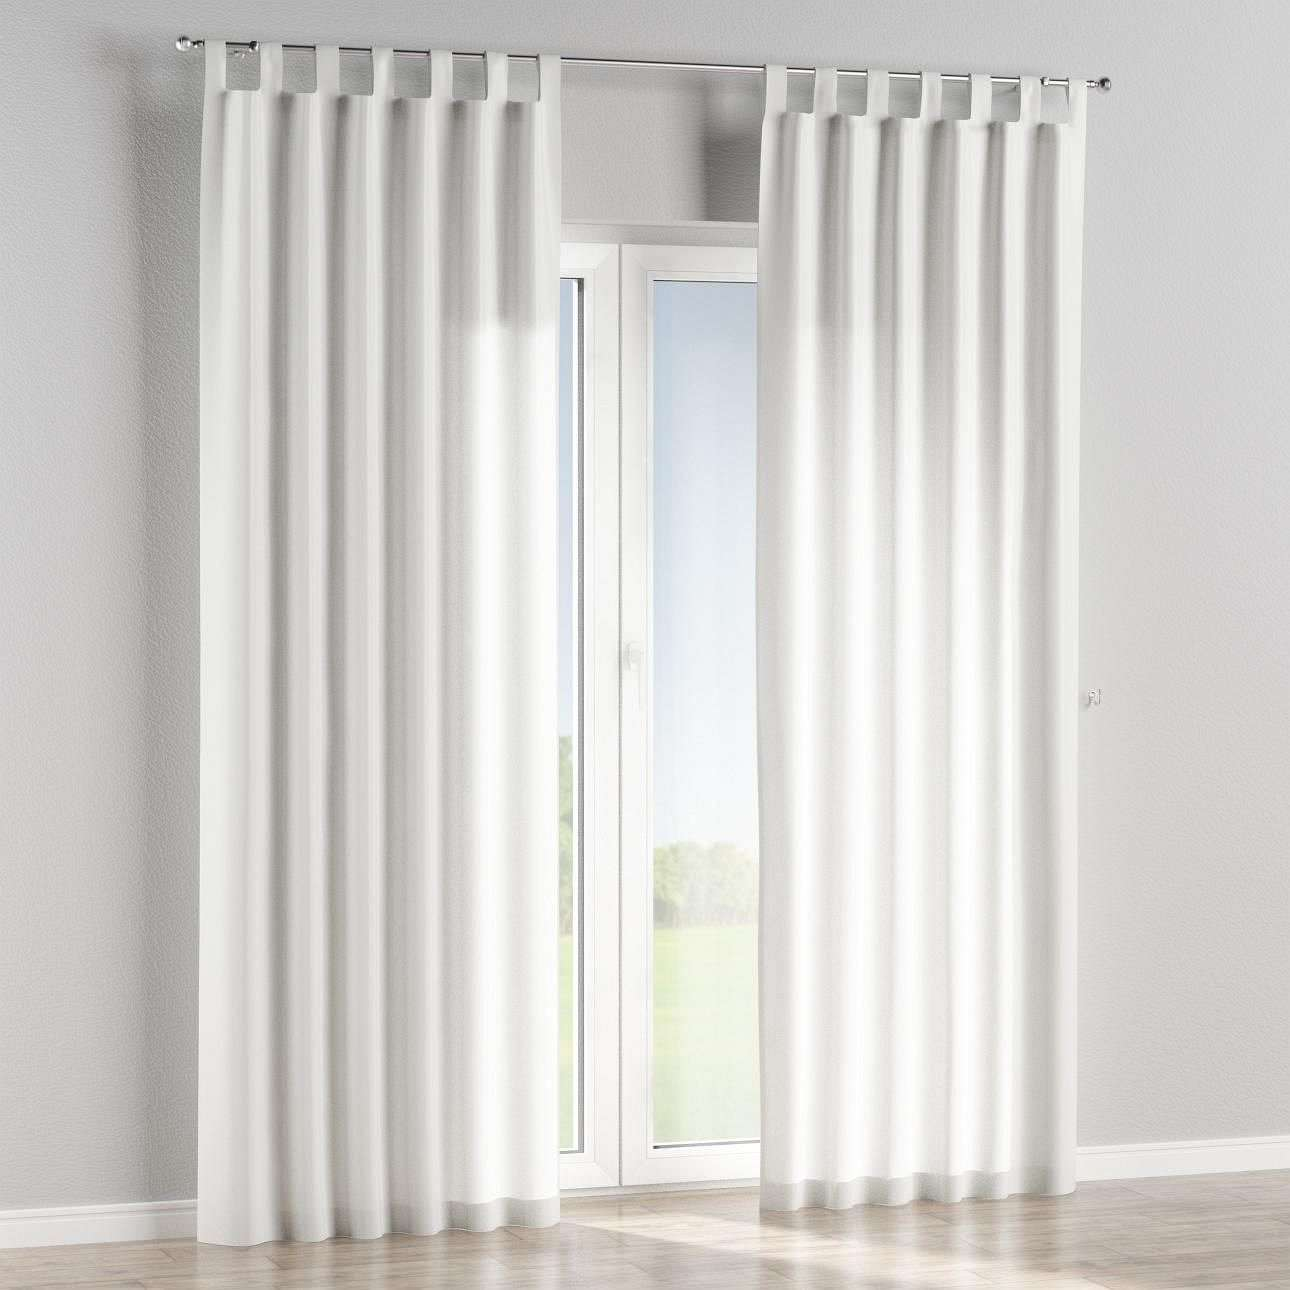 Tab top curtains in collection Taffeta , fabric: 103-83